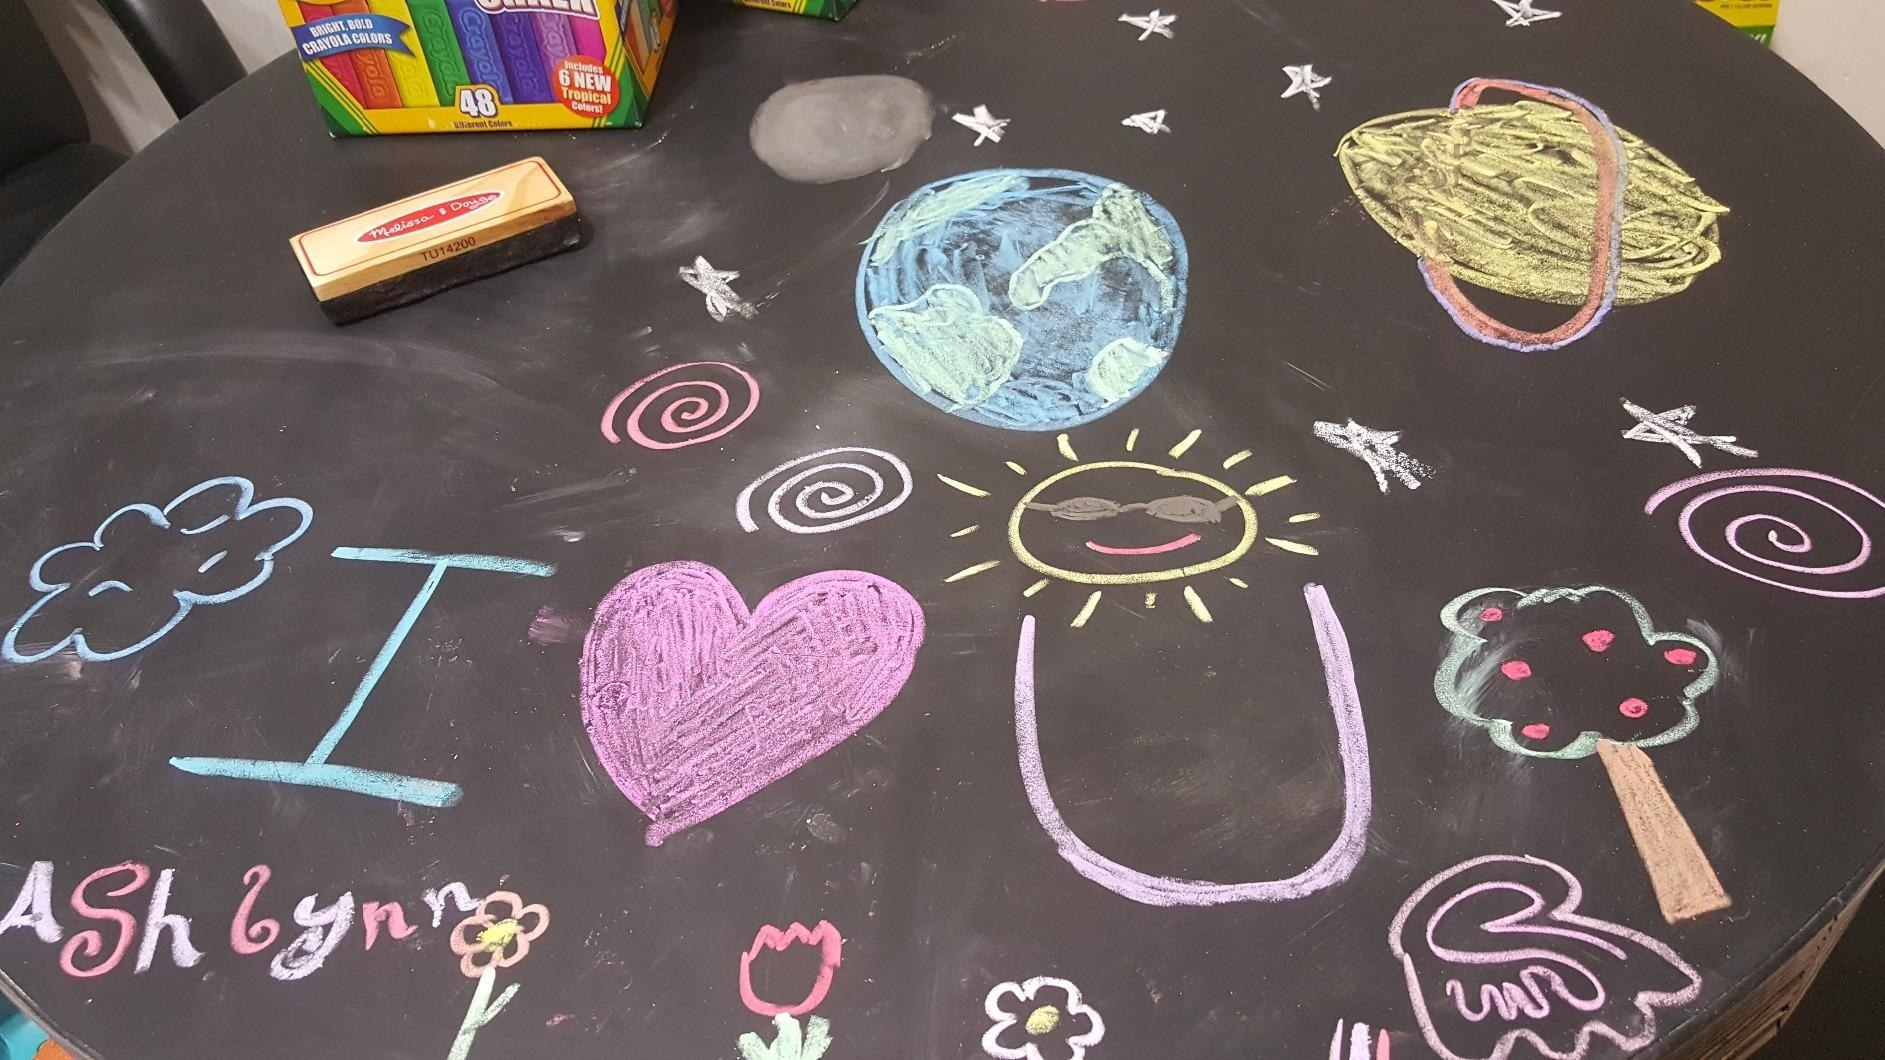 chalkboard table covered in chalk drawings